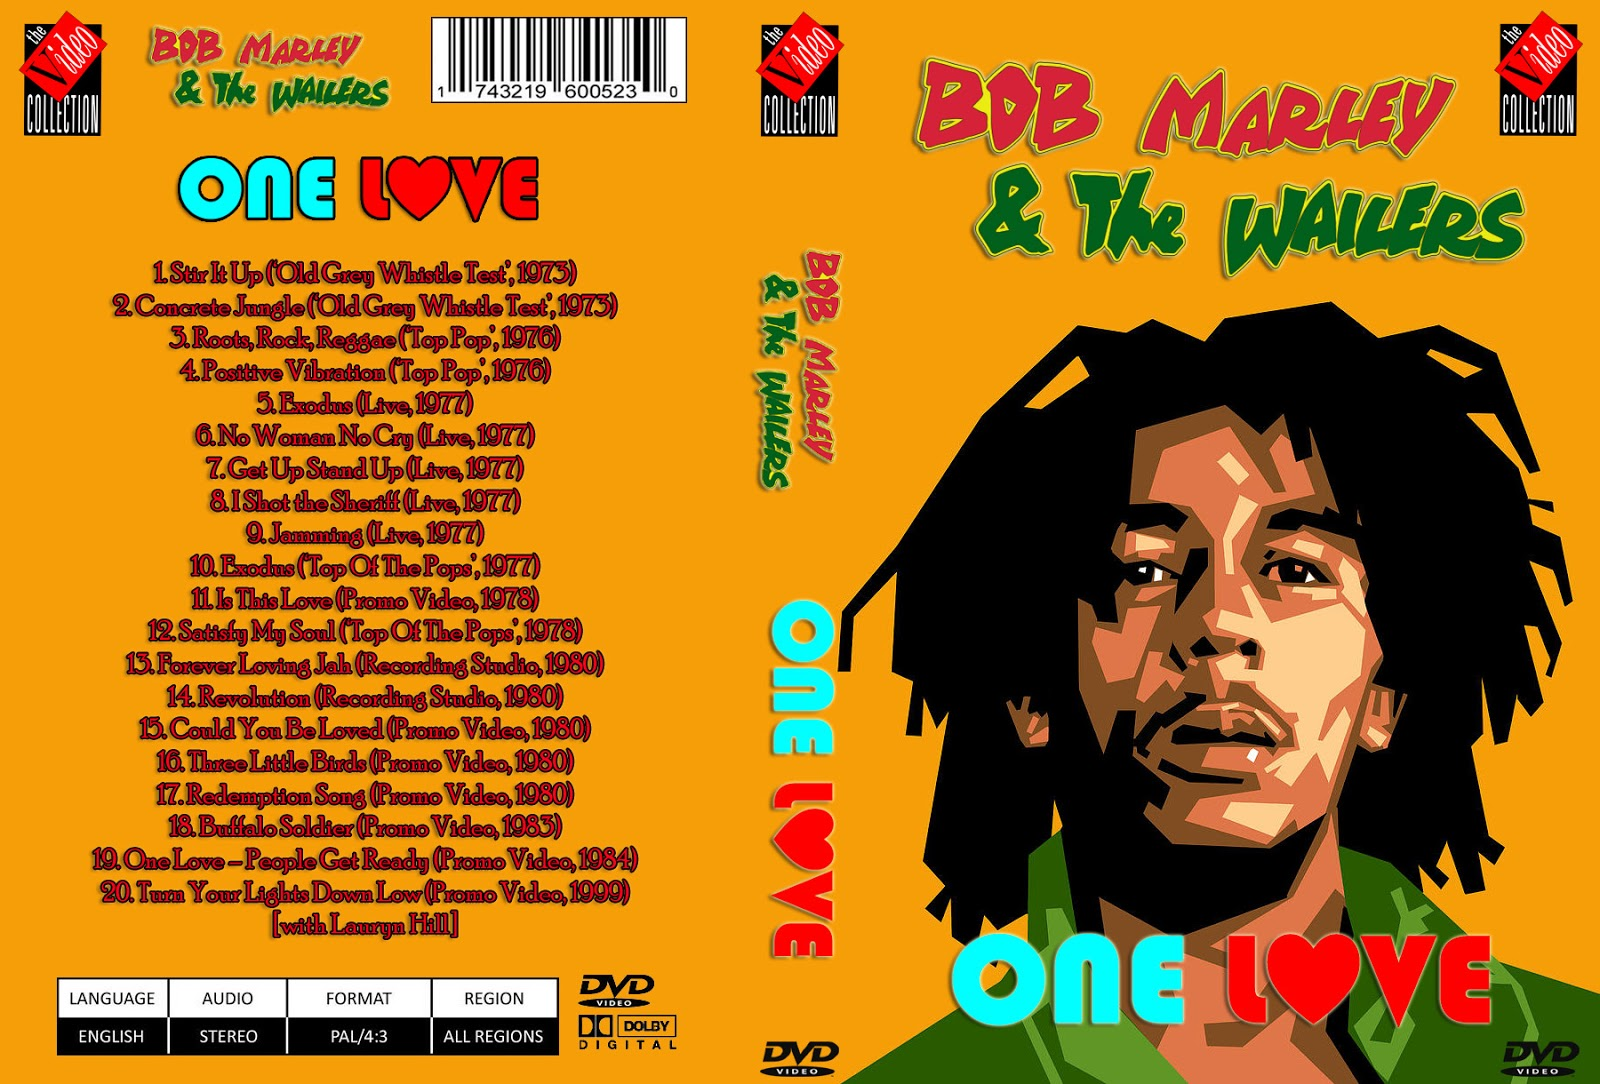 Bob Marley The Wailers Selassie Is The Chapel